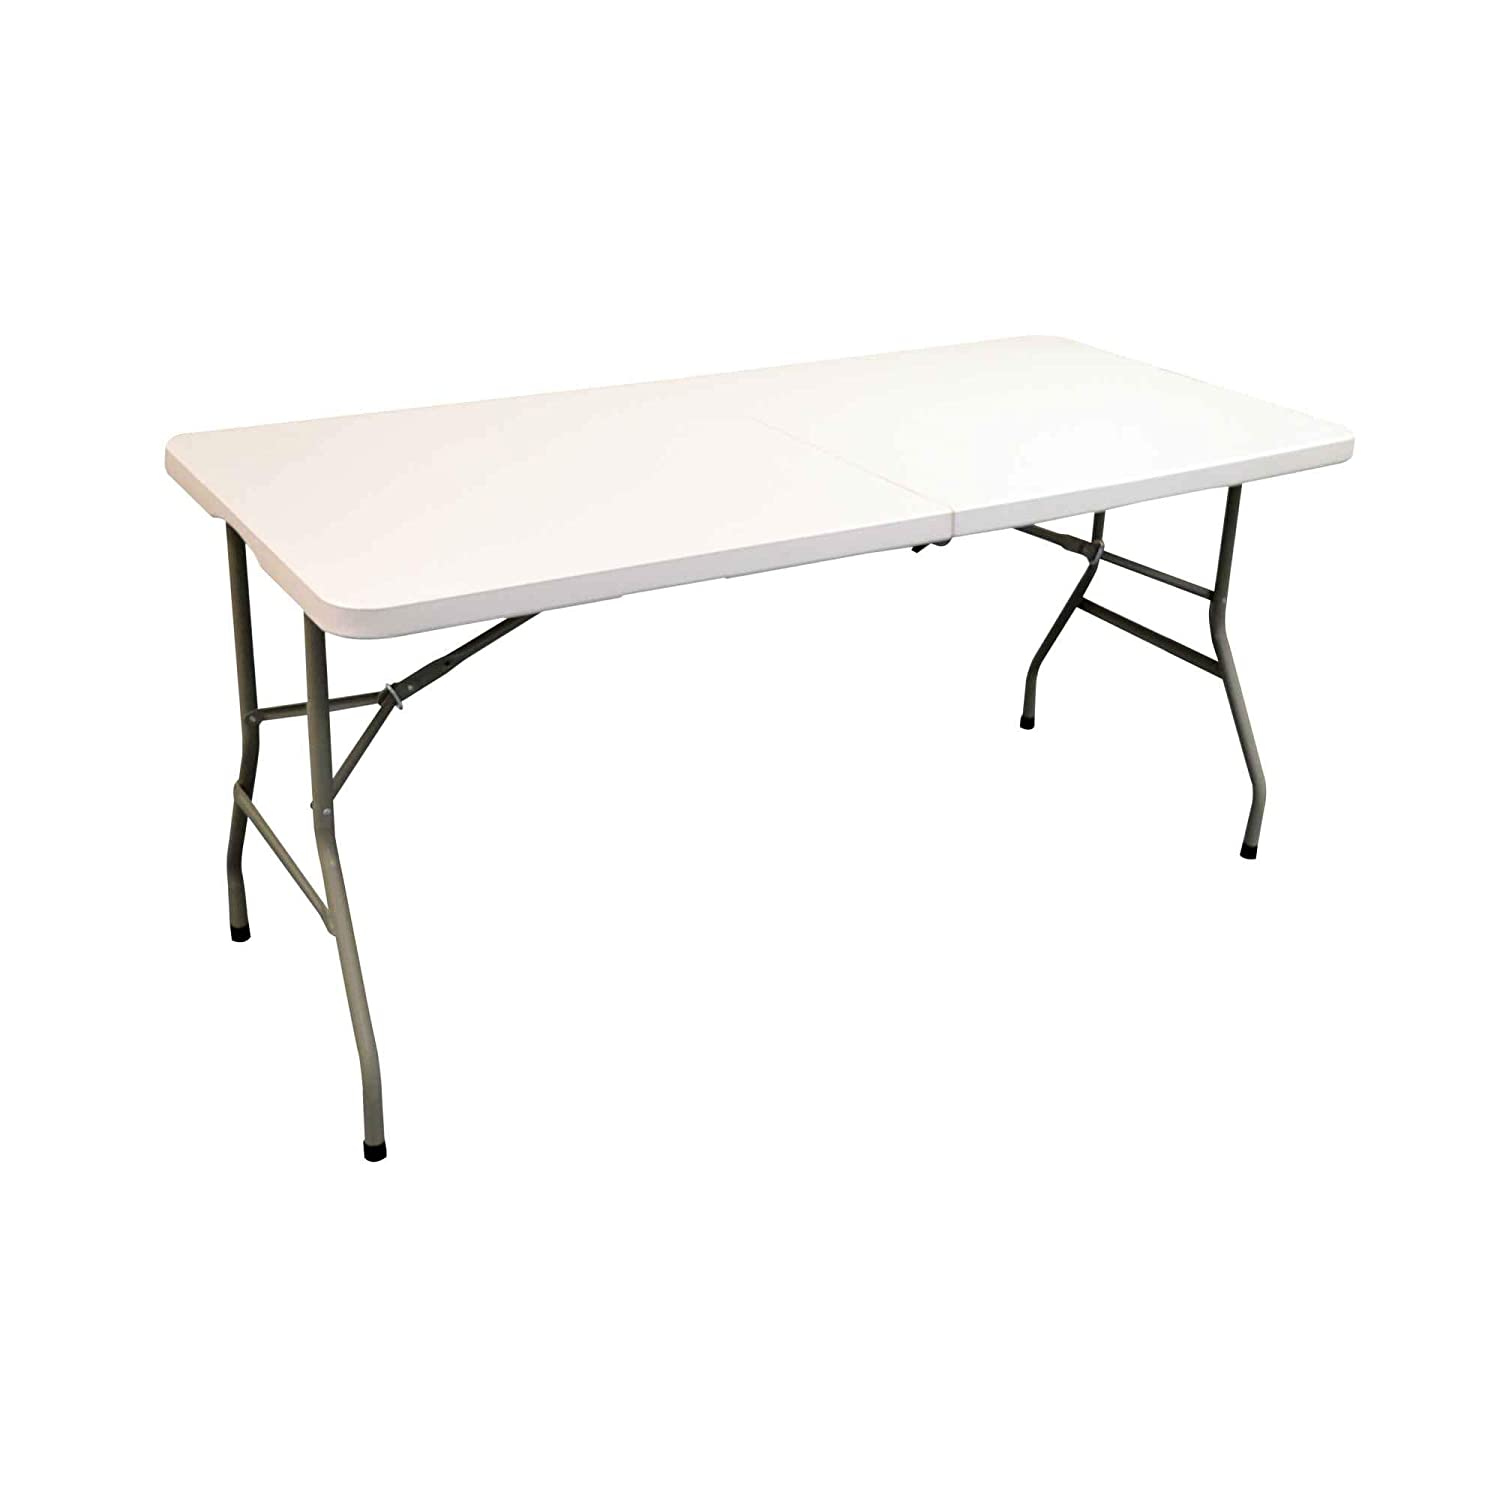 Harbour Housewares Folding, Events, Trestle Table - 5ft Long. Foldable. Easy To Store